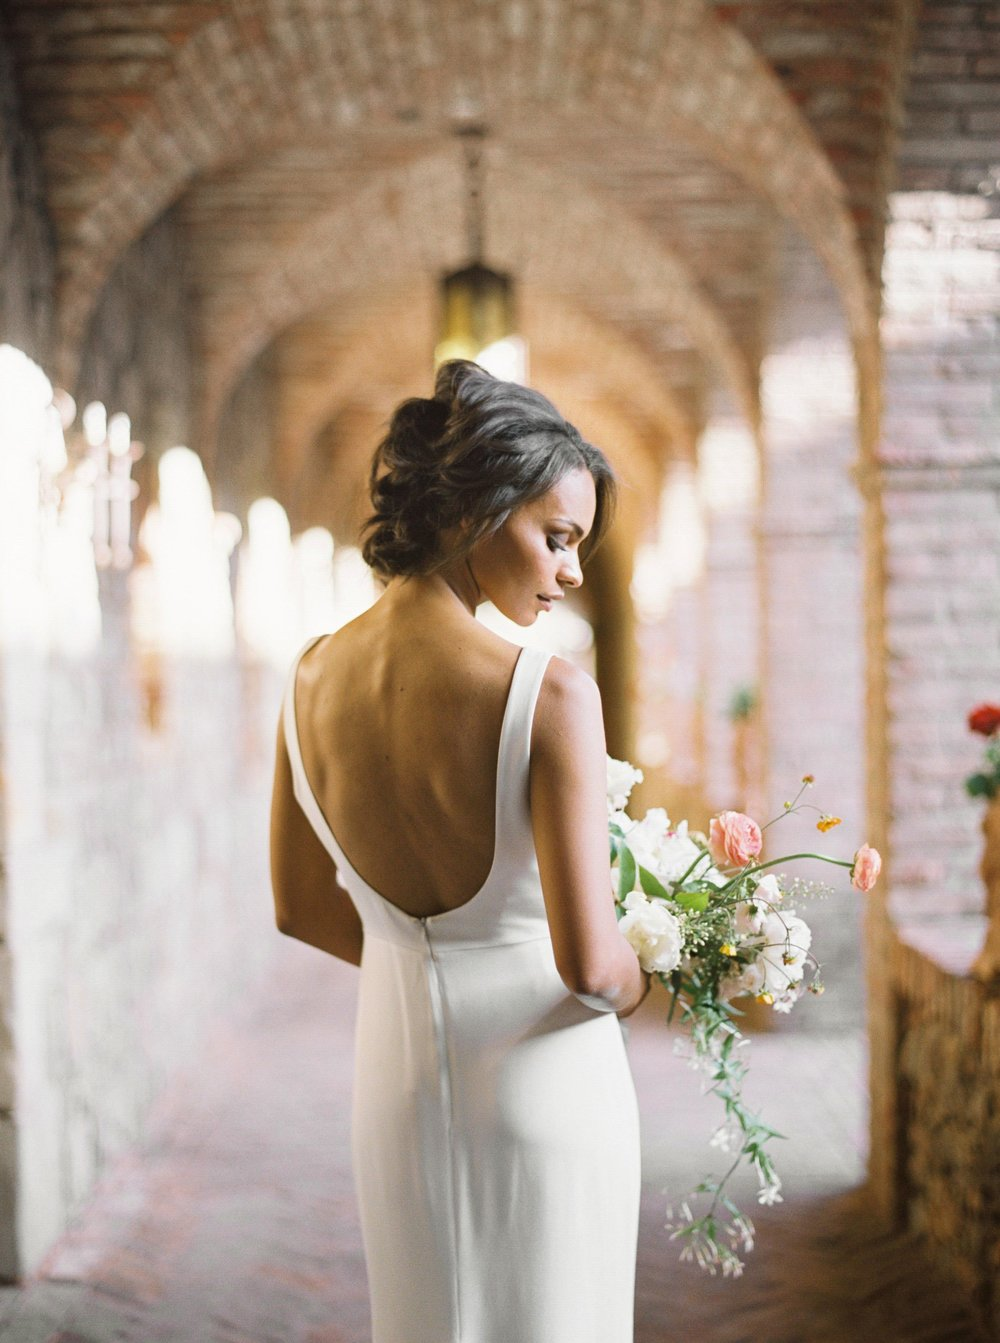 043napa_wedding_photographer_and_videographer_destination_and_elopement_photography.jpg